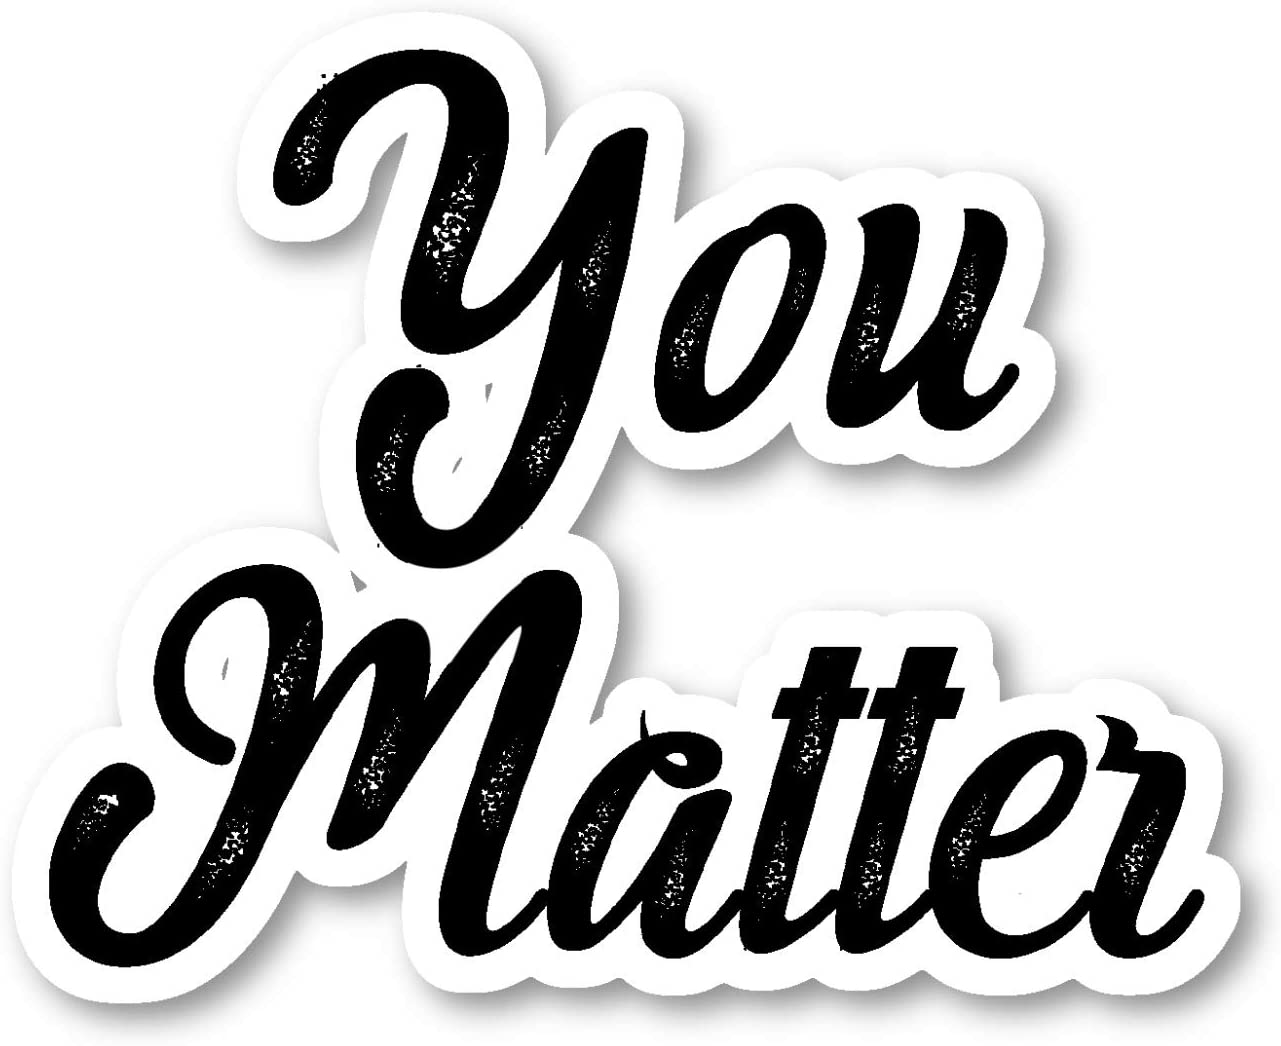 You Matter Sticker Inspirational Quotes Stickers - 2 Pack - Laptop Stickers - 2.5 Inches Vinyl Decal - Laptop, Phone, Tablet Vinyl Decal Sticker (2 Pack) S214623